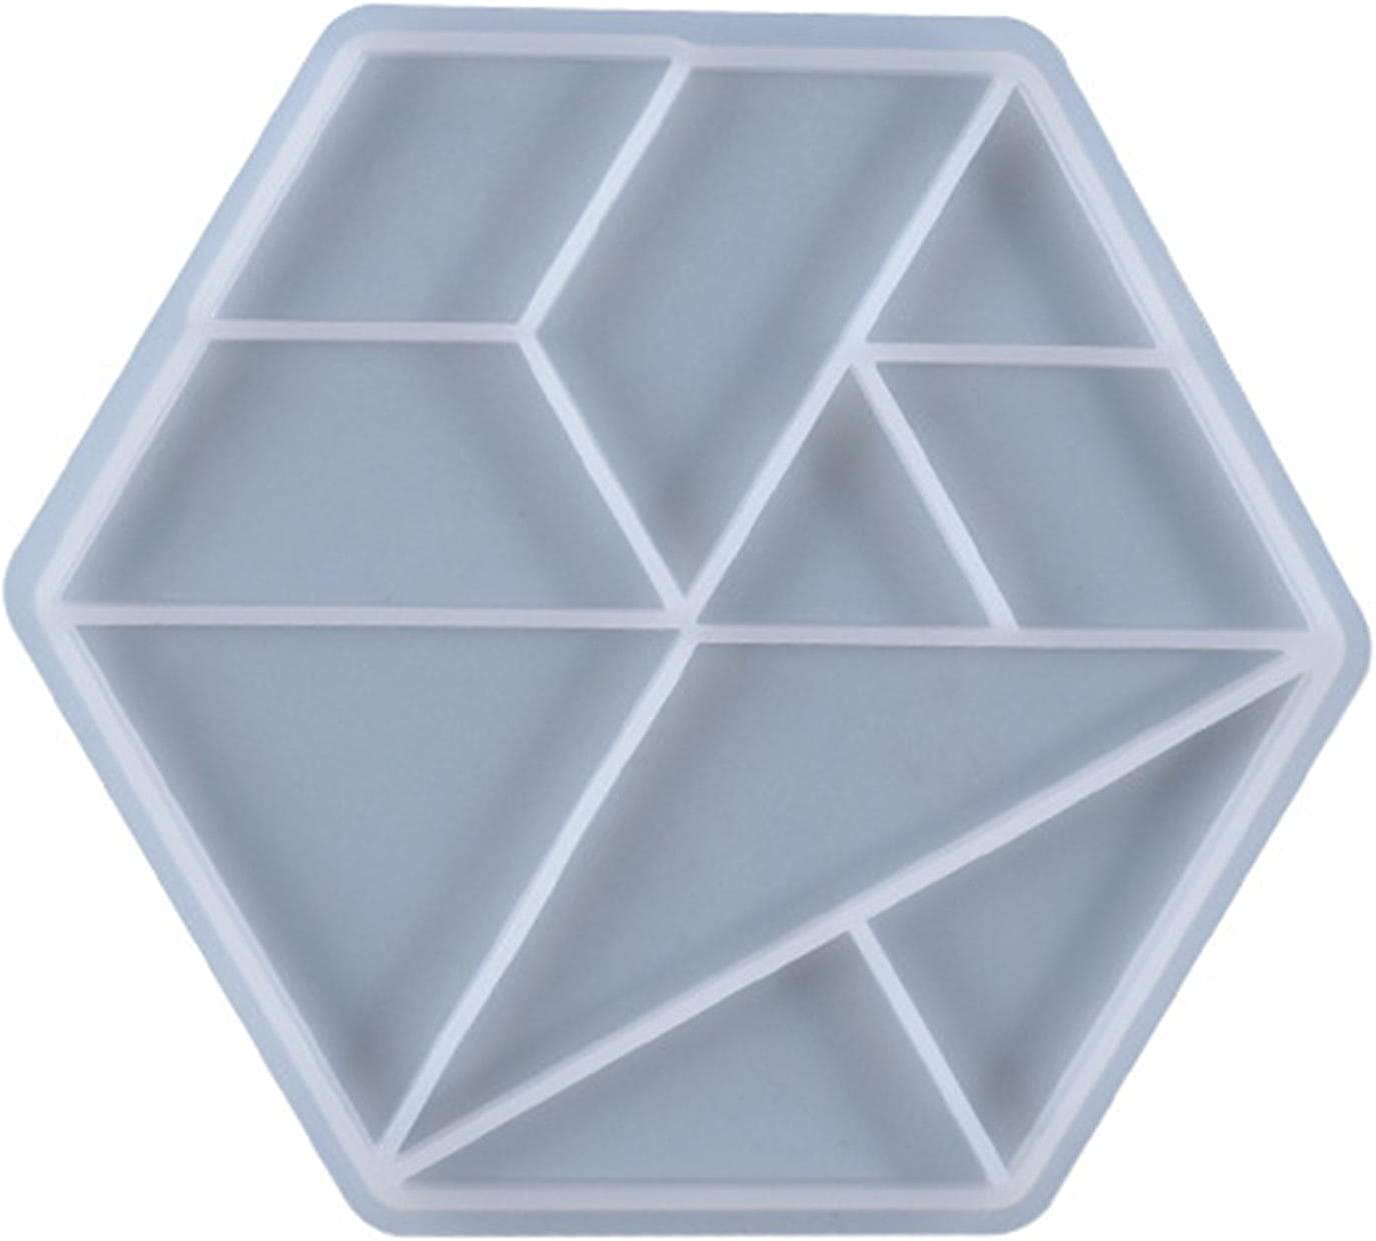 Resin Tray Molds Max 61% Deluxe OFF Game Board Bracelet Mould Tangram Silico